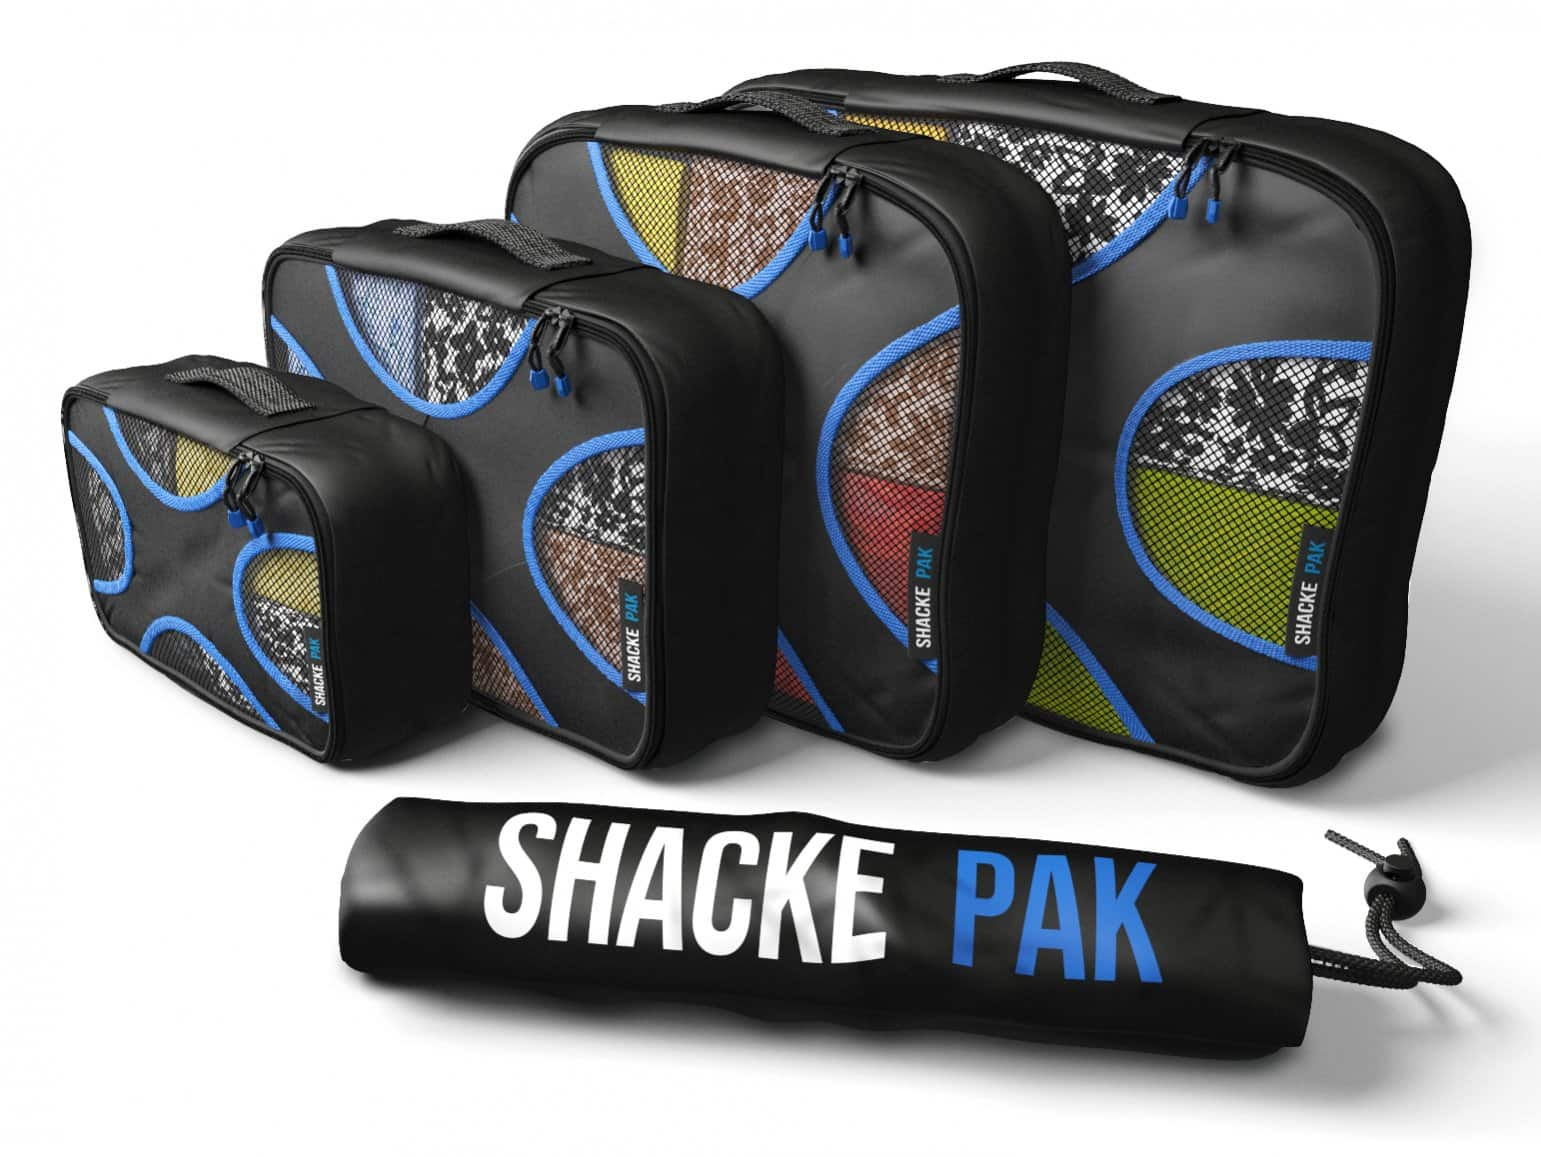 4 Set Packing Cubes with Laundry Bag (Travel Organizers) - By Shacke Pak - 25% OFF @ 21.99